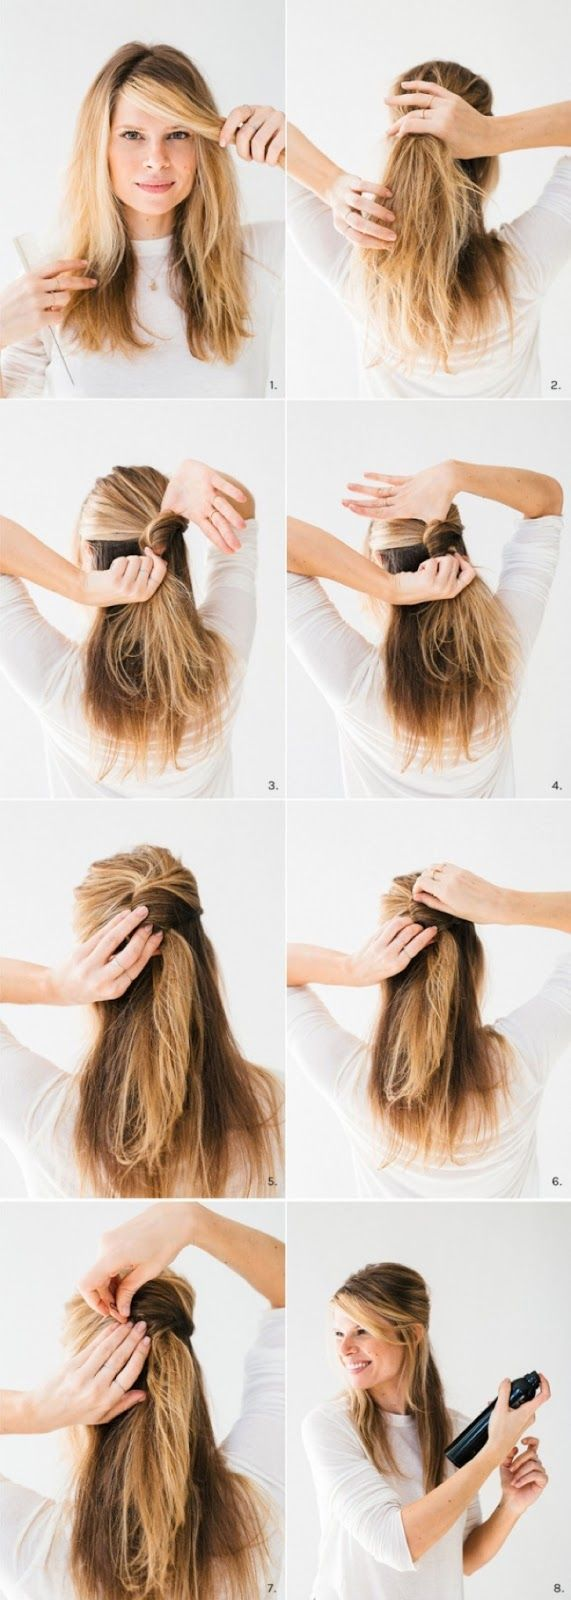 Simple Ponytail You Can Do In Less Than 5 Minutes | trends4everyone